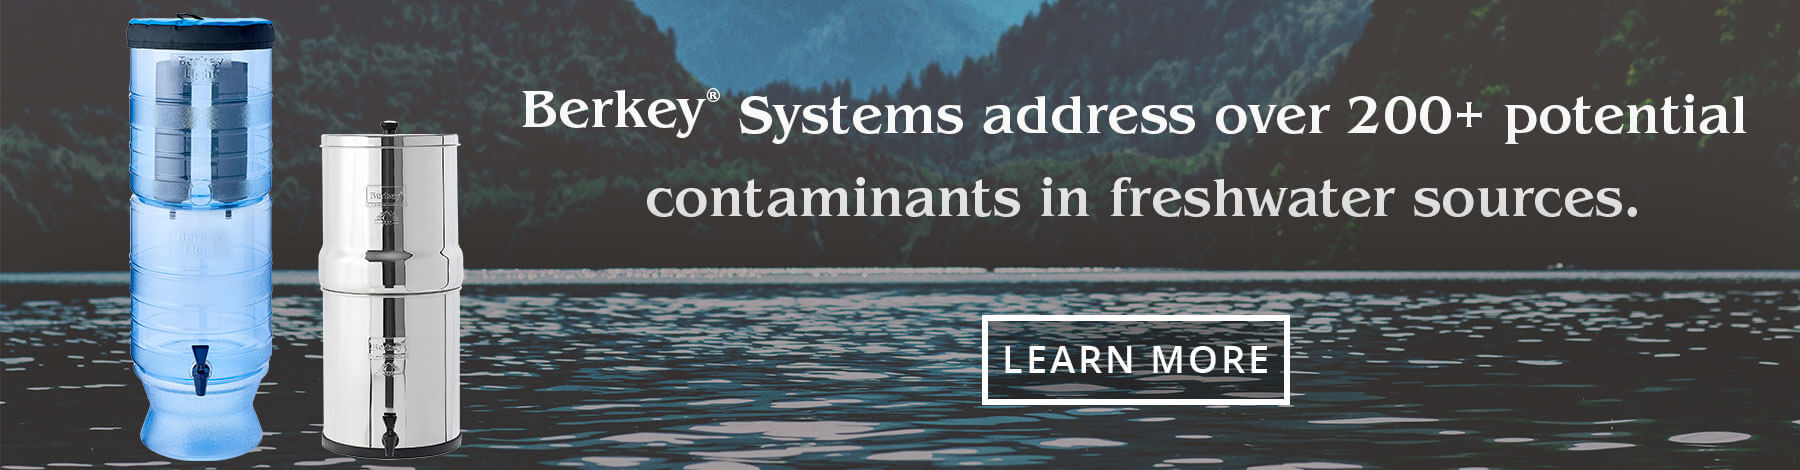 Berkey systems address over 200 potential contaminants in freshwater sources.